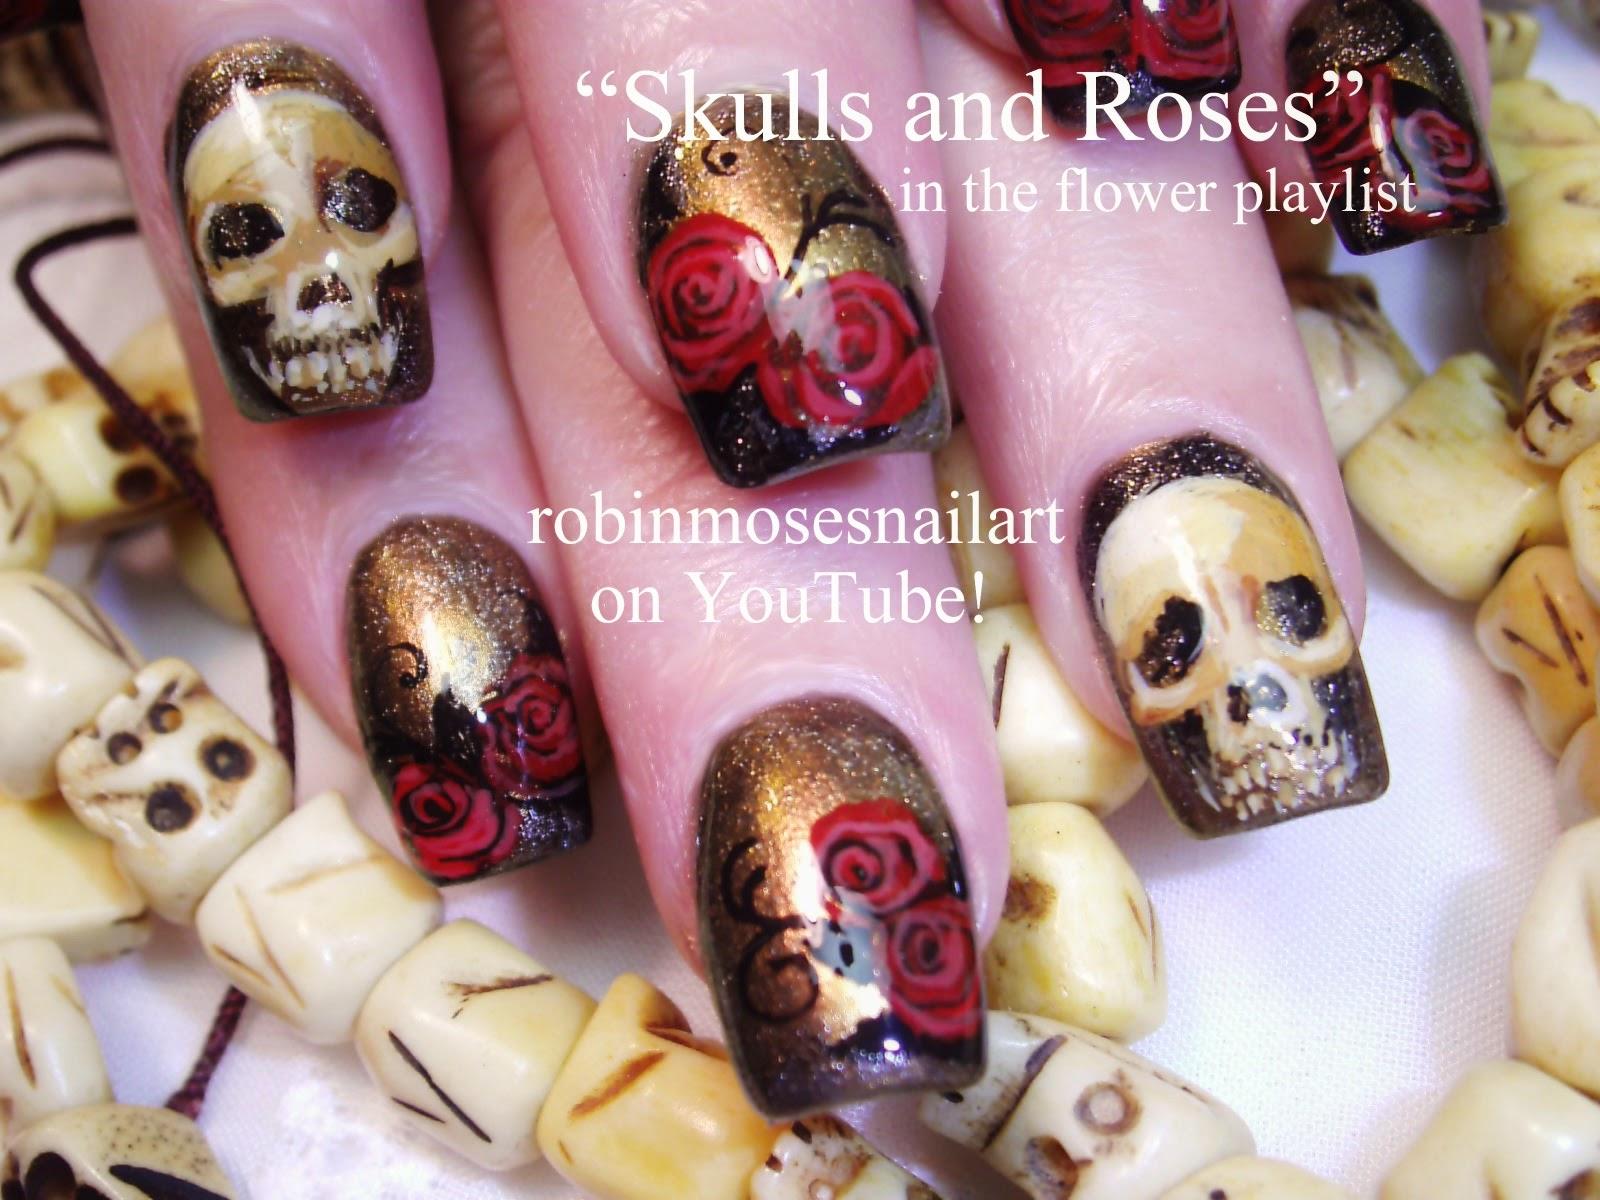 Robin moses nail art skull nails halloween nails red rose nail art tutorials halloween nails diy easy halloween for beginners and up halloween nail art designs tutorial prinsesfo Gallery